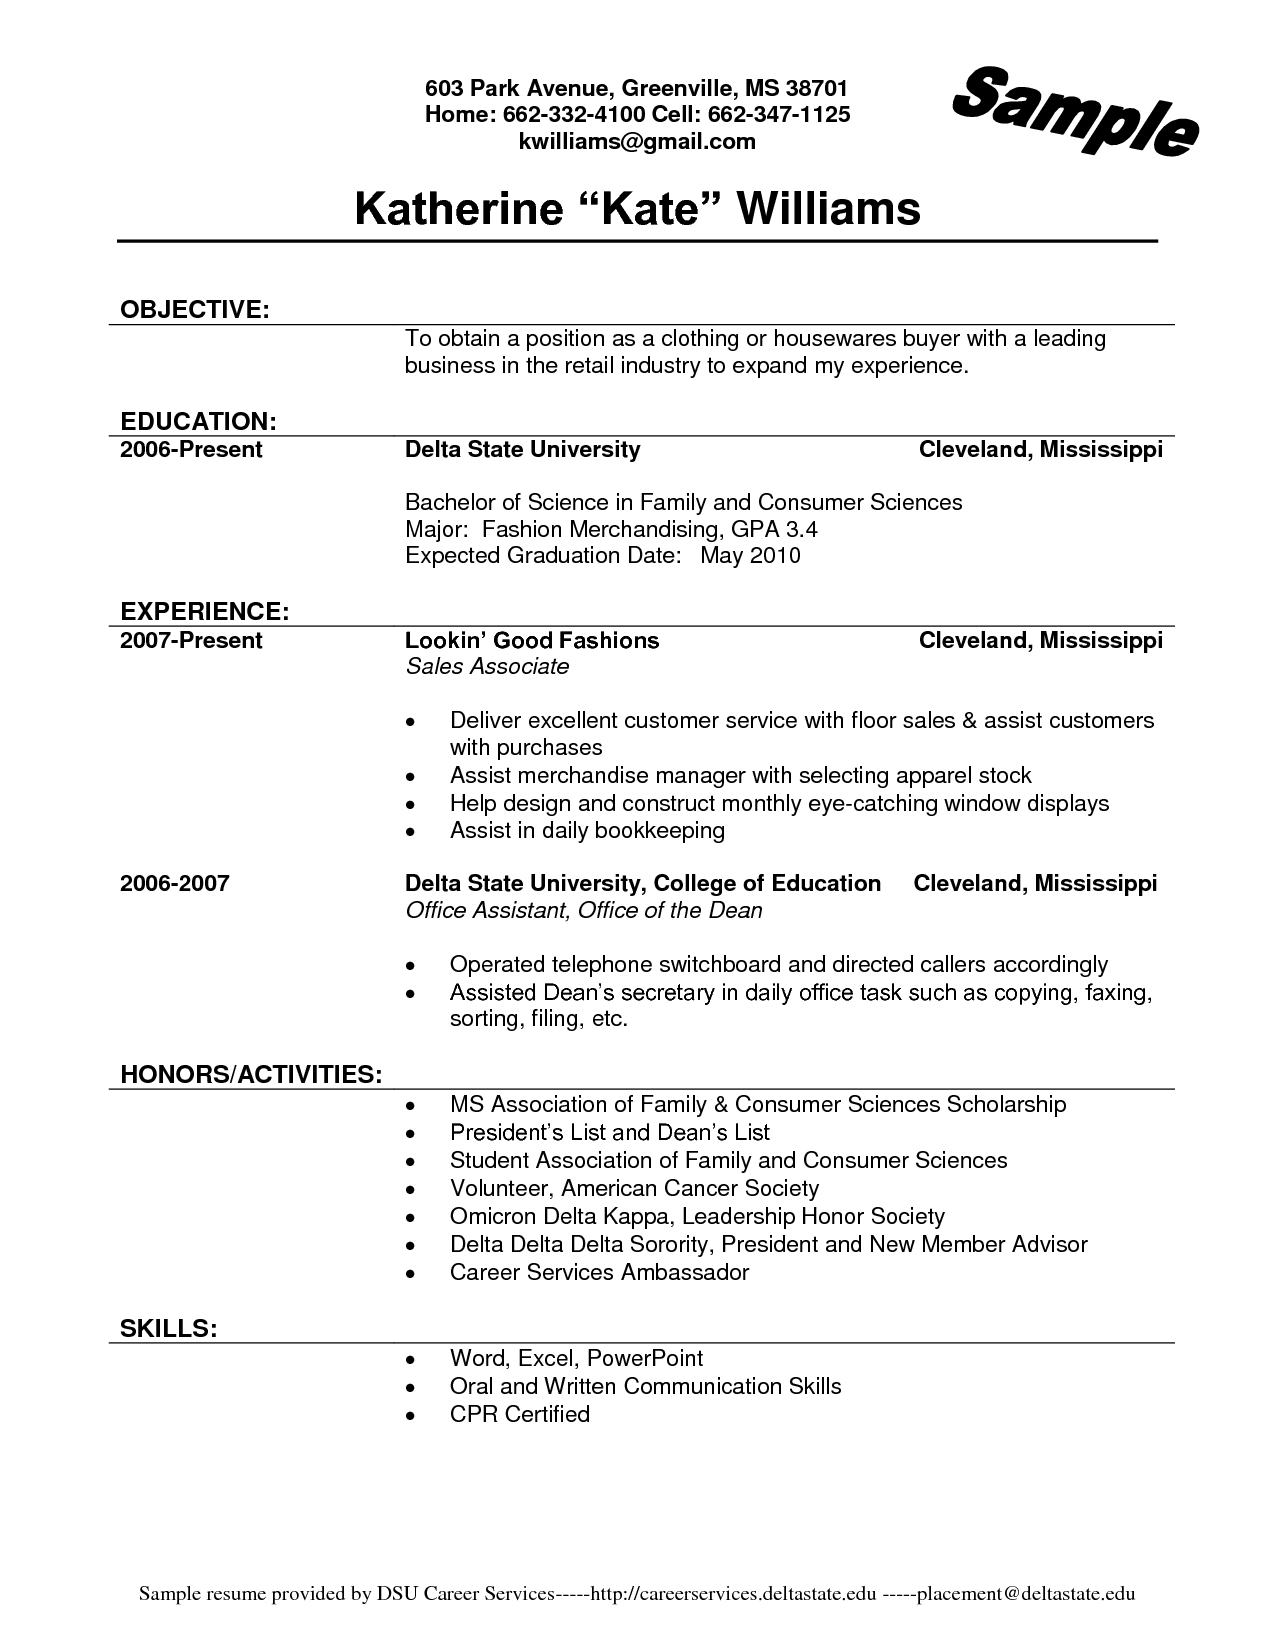 How To Construct A Resume Pinramanjhaandasso On Ritesh Kumar Jha  Pinterest  Business .